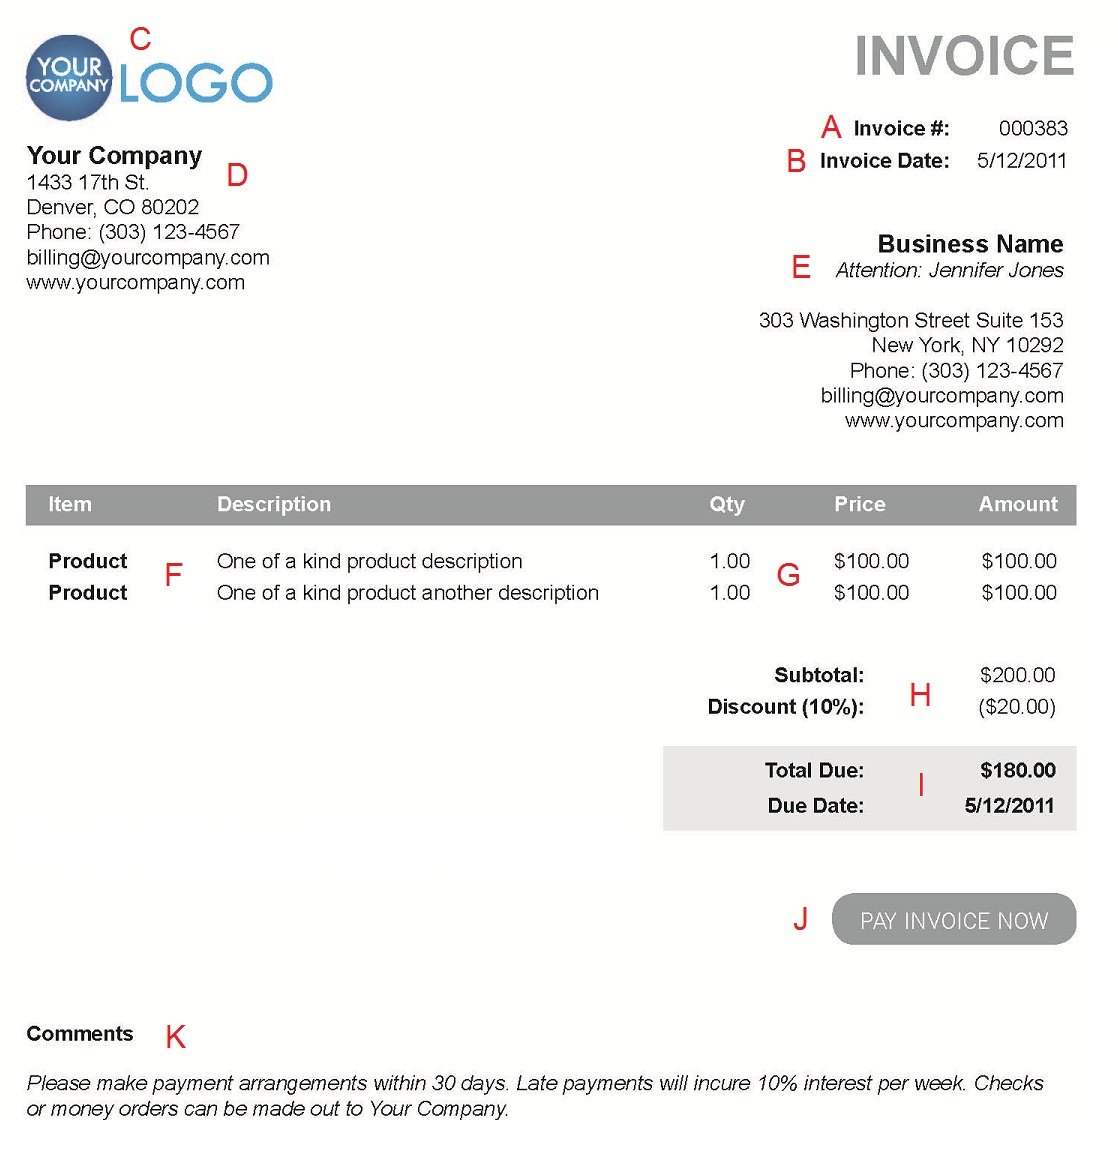 Weirdmailus  Picturesque The  Different Sections Of An Electronic Payment Invoice With Foxy A  With Delightful Receipt Folder Also Receipt Spindle In Addition How To Write A Rent Receipt And Receipt Template Free As Well As Hand Written Receipt Additionally Small Printer For Receipt From Paysimplecom With Weirdmailus  Foxy The  Different Sections Of An Electronic Payment Invoice With Delightful A  And Picturesque Receipt Folder Also Receipt Spindle In Addition How To Write A Rent Receipt From Paysimplecom